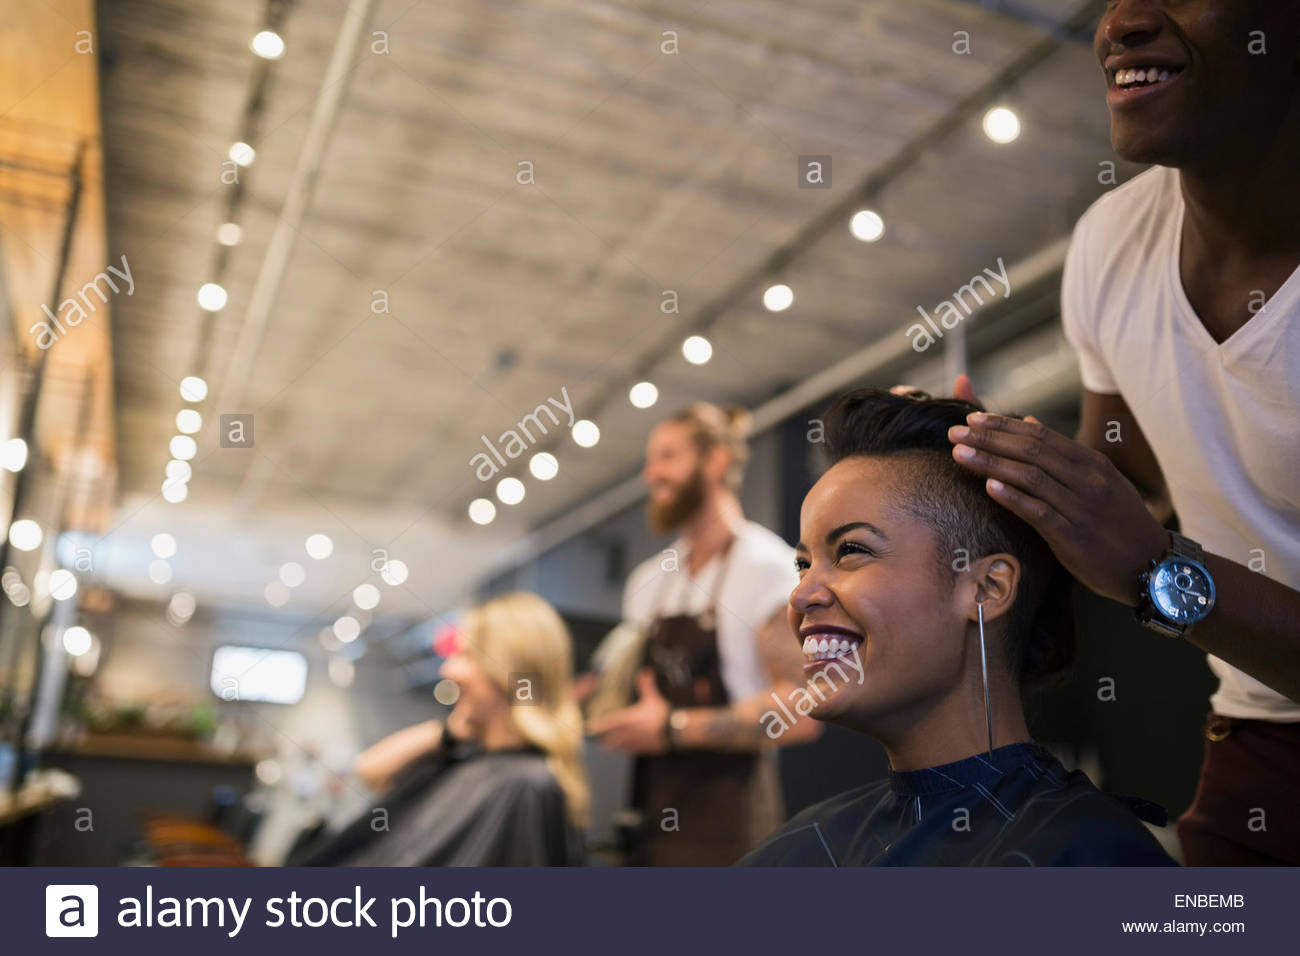 Smiling woman getting hair styled in hair salon - Stock Image